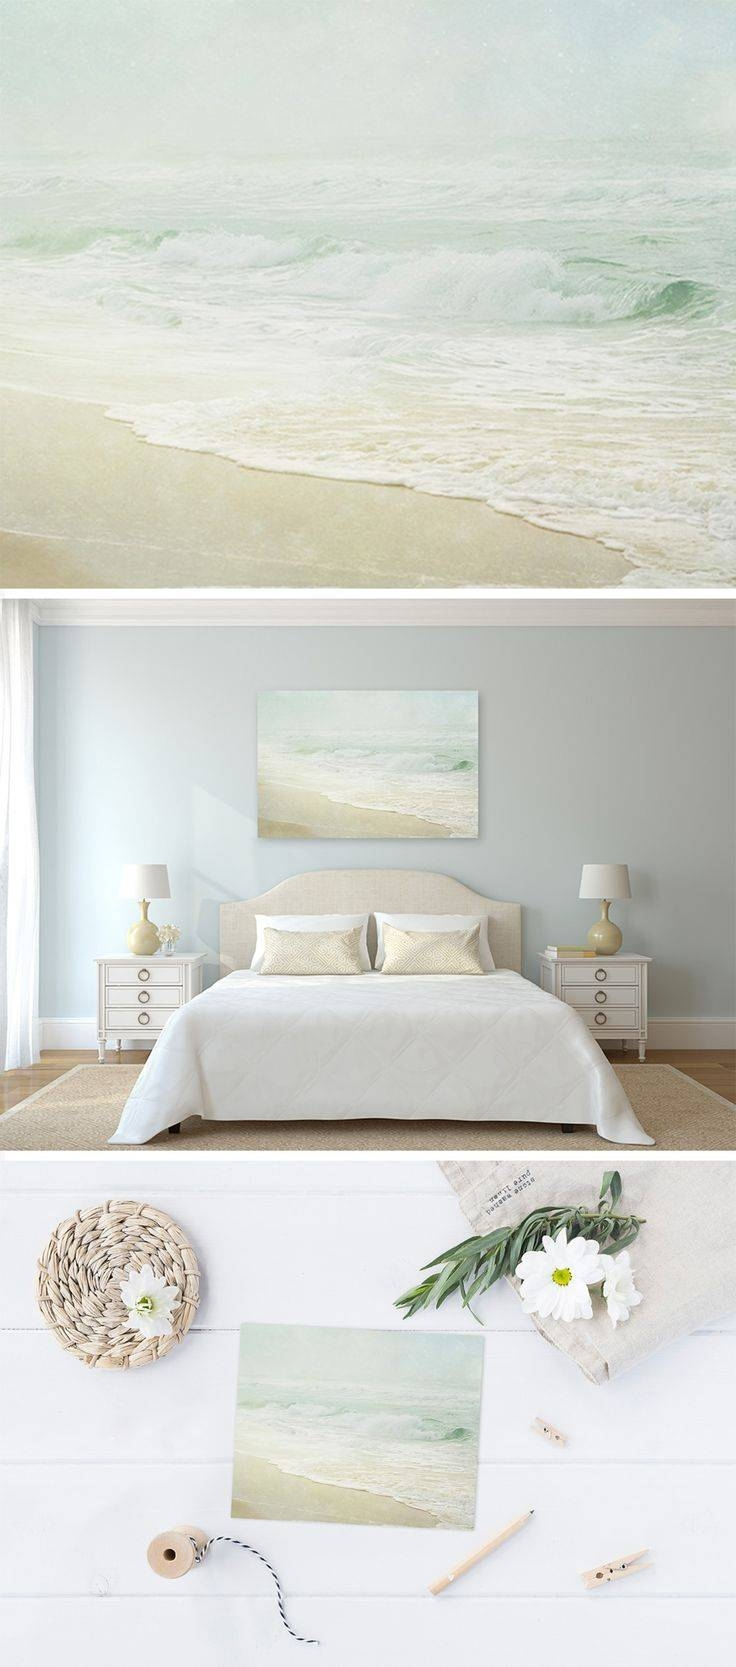 Best 25+ Coastal Wall Art Ideas On Pinterest | Coastal Inspired In Most Current Beach Wall Art For Bedroom (View 2 of 20)